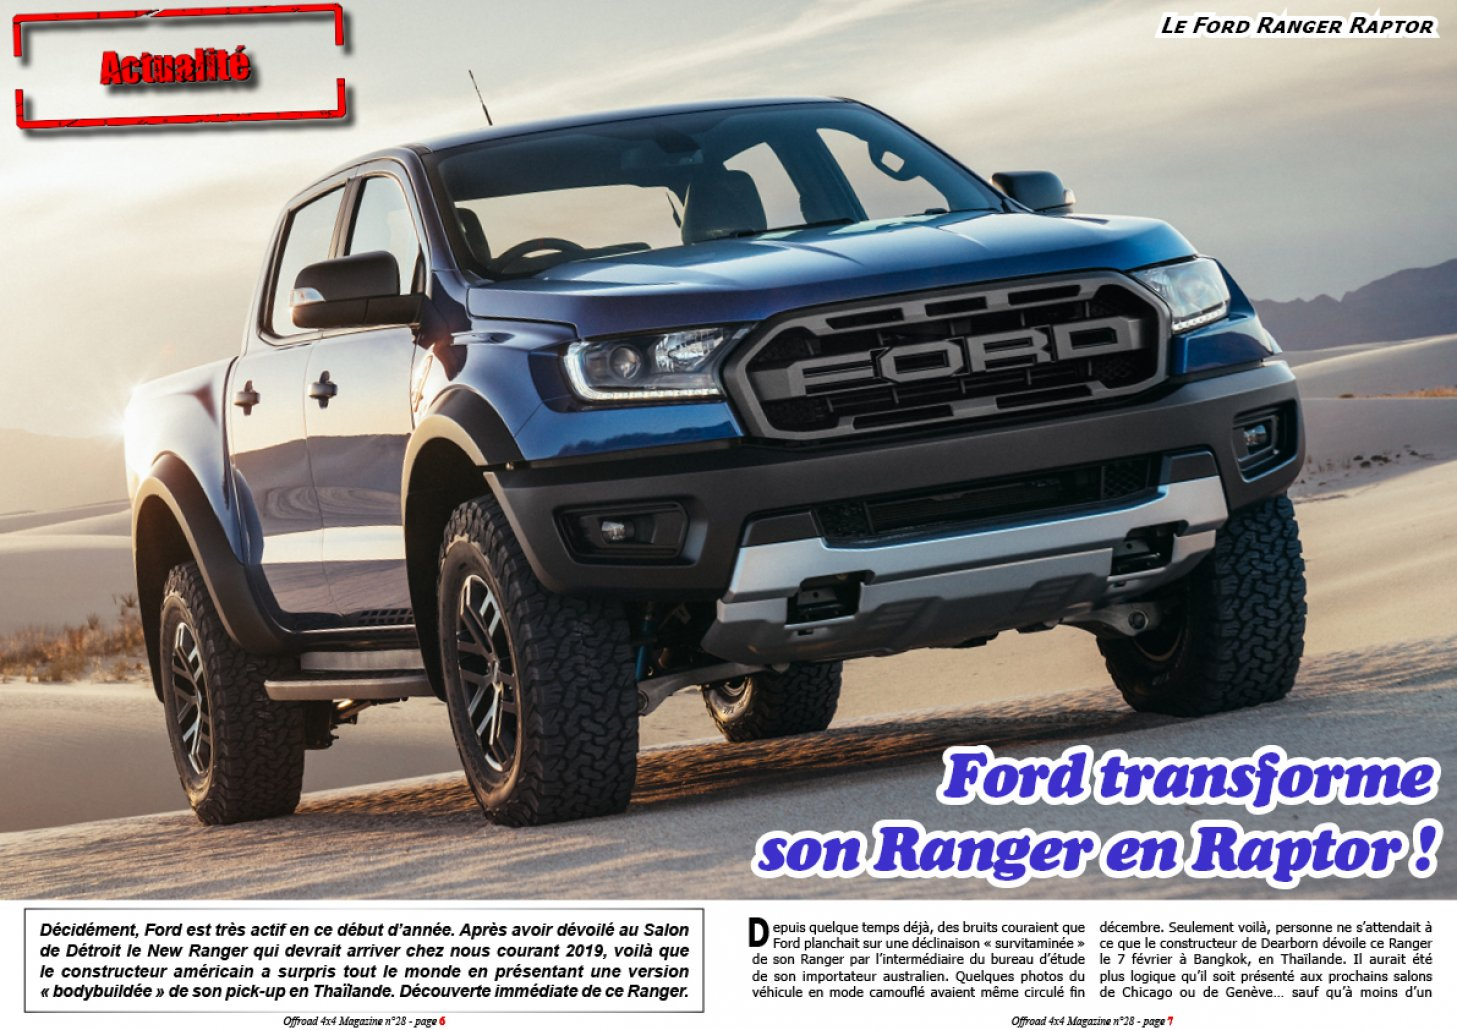 Ford transforme son Ranger en Raptor